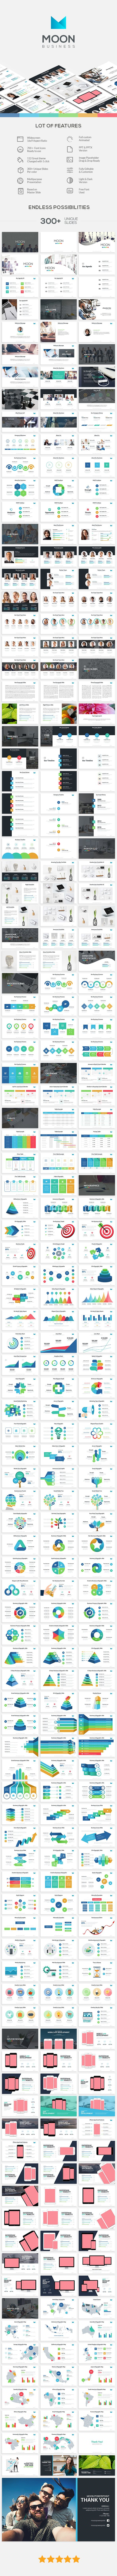 MOON | Multipurpose Business PowerPoint Presentation Template. Download here: http://graphicriver.net/item/moon-multipurpose-business-presentation/16144025?ref=ksioks